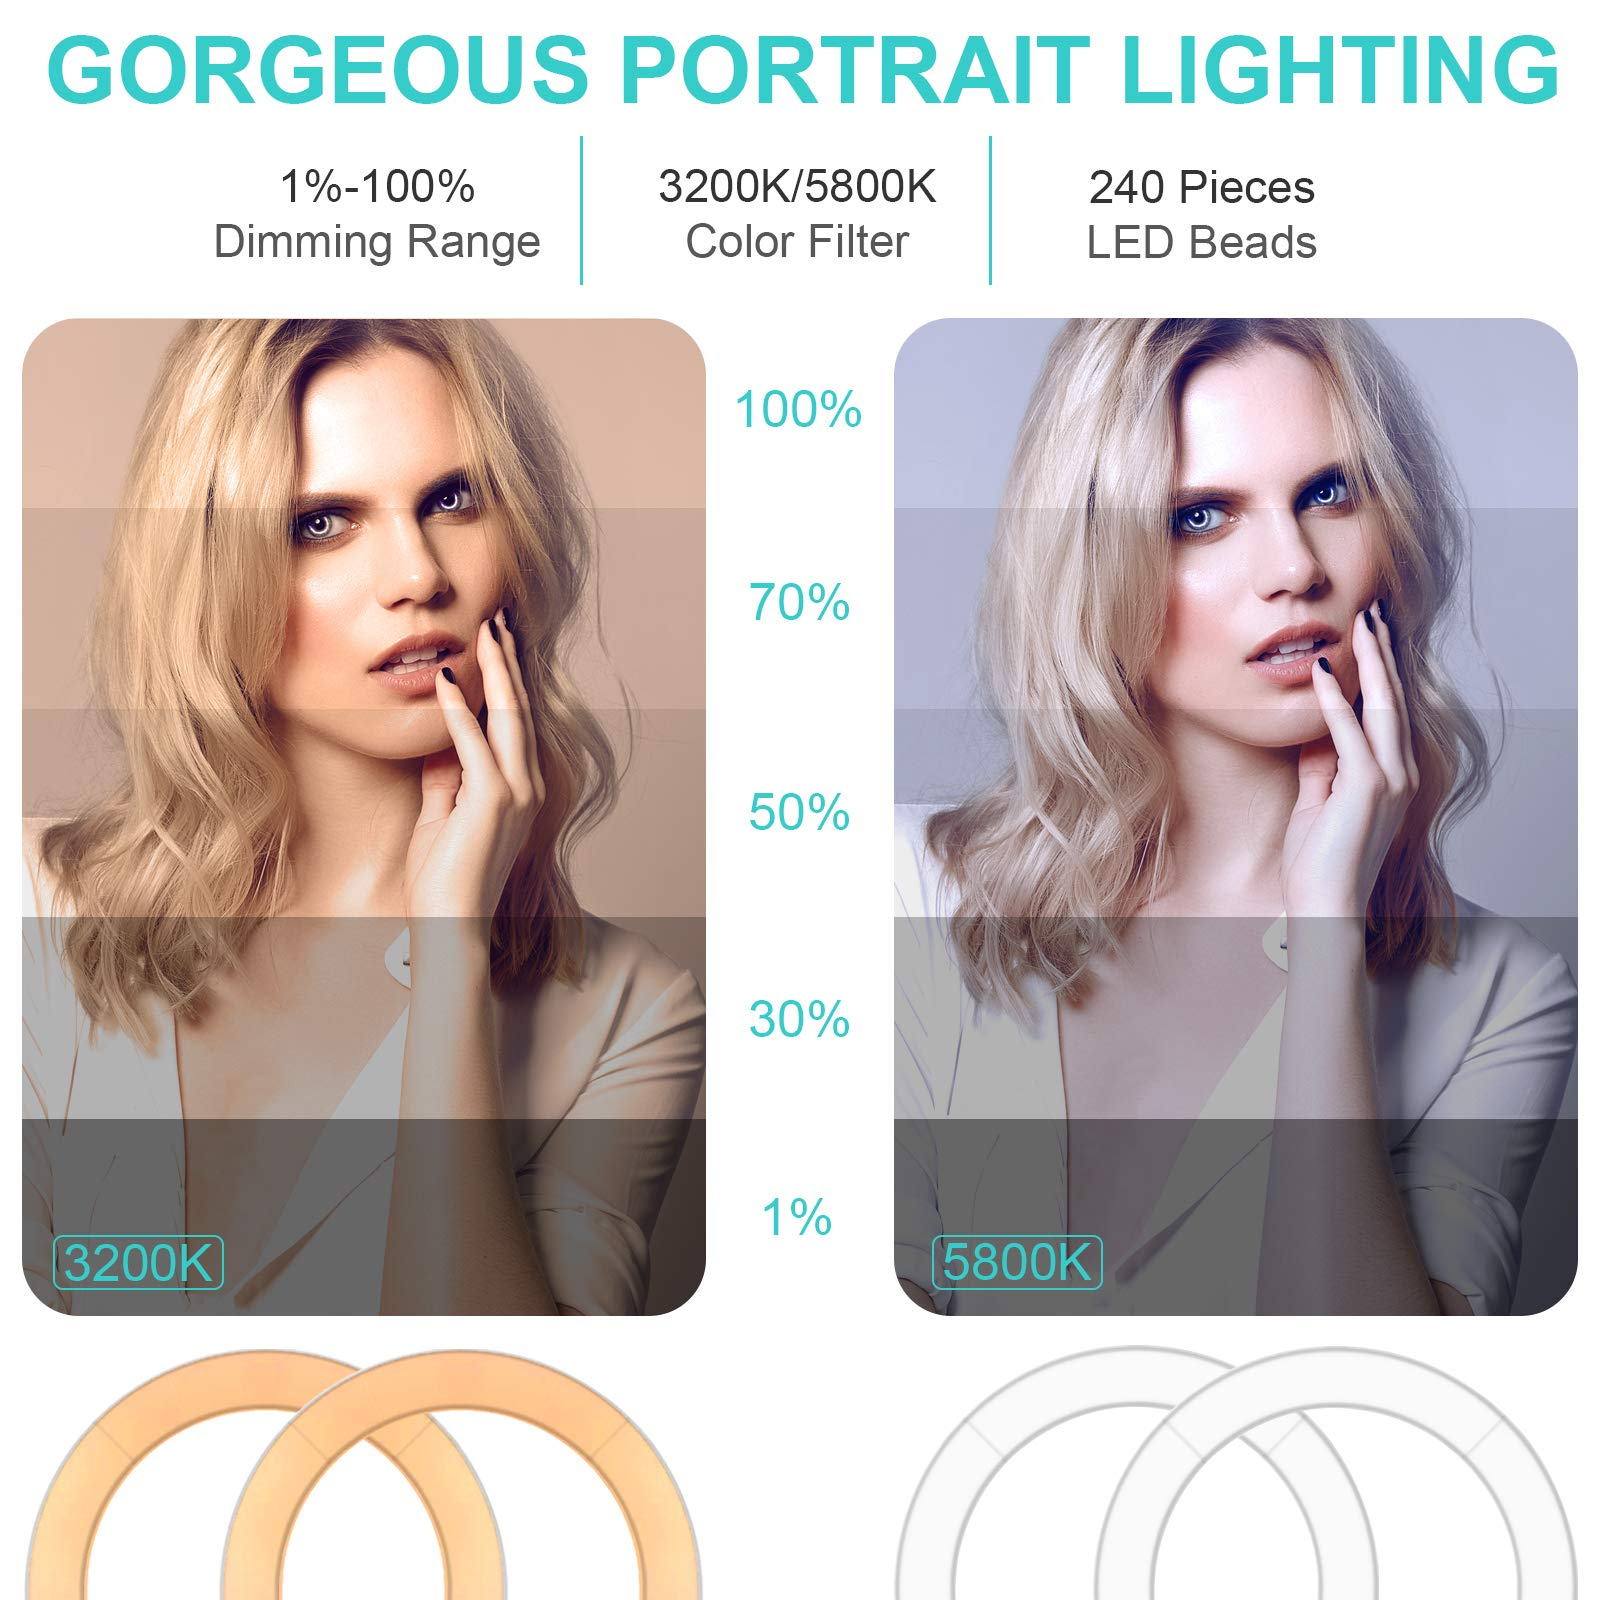 Ring Light Kit 18'' 48cm Outer 55W 5500K Dimmable Led Light Ring with Tripod Stand & Carrying Bag for Camera, Smartphone,Make-Up,YouTube,Portrait Shooting,Live Stream etc by PIXEL (Image #3)